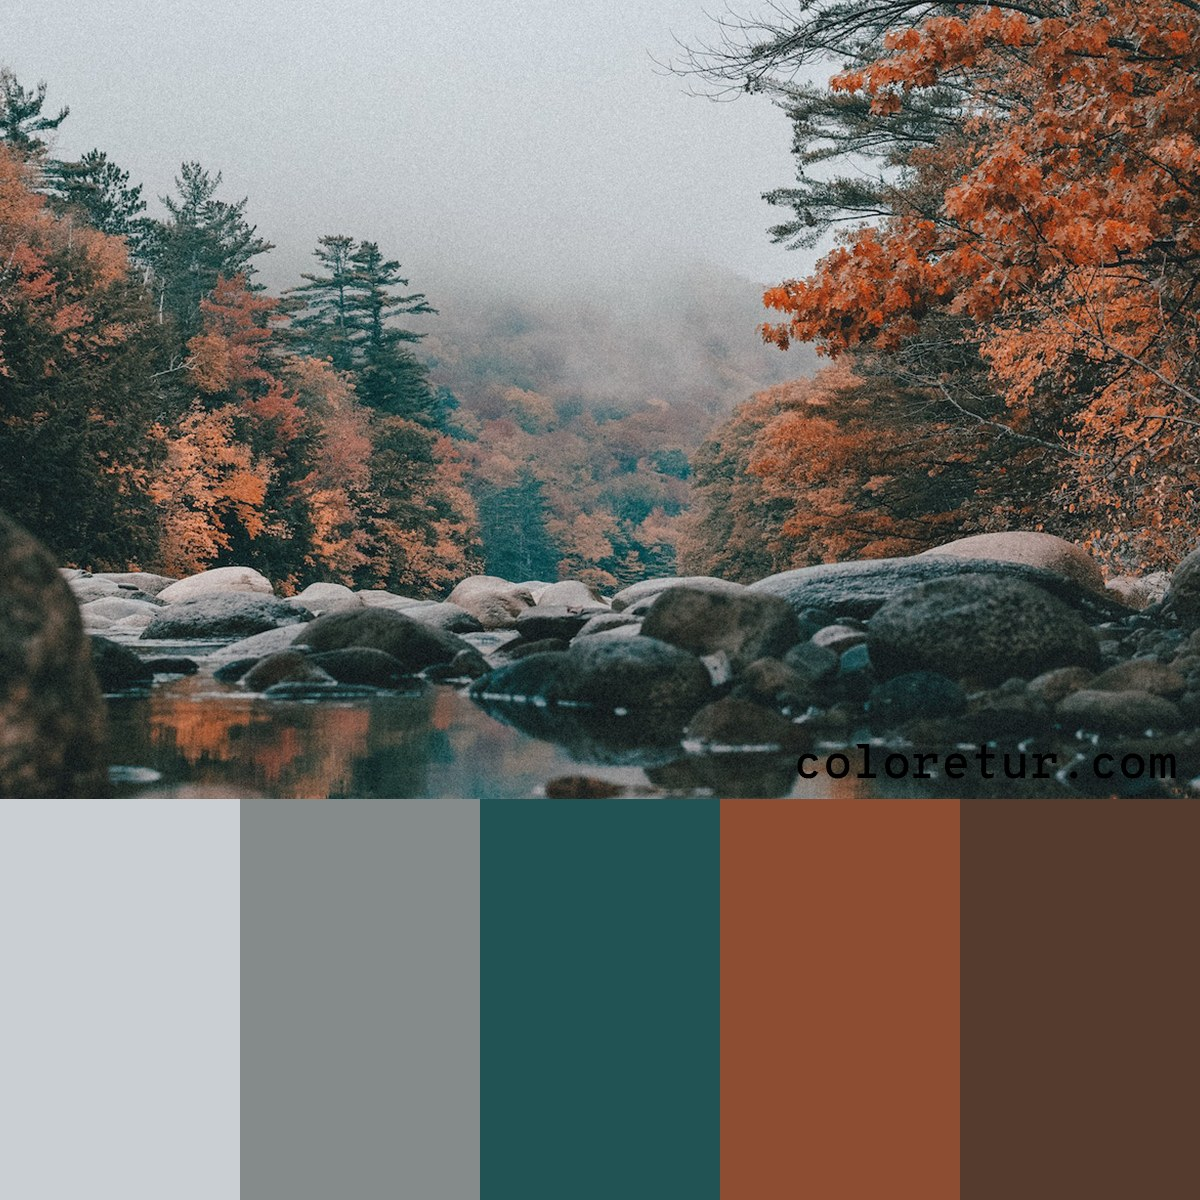 A muted palette from a secluded pond in the mountains.